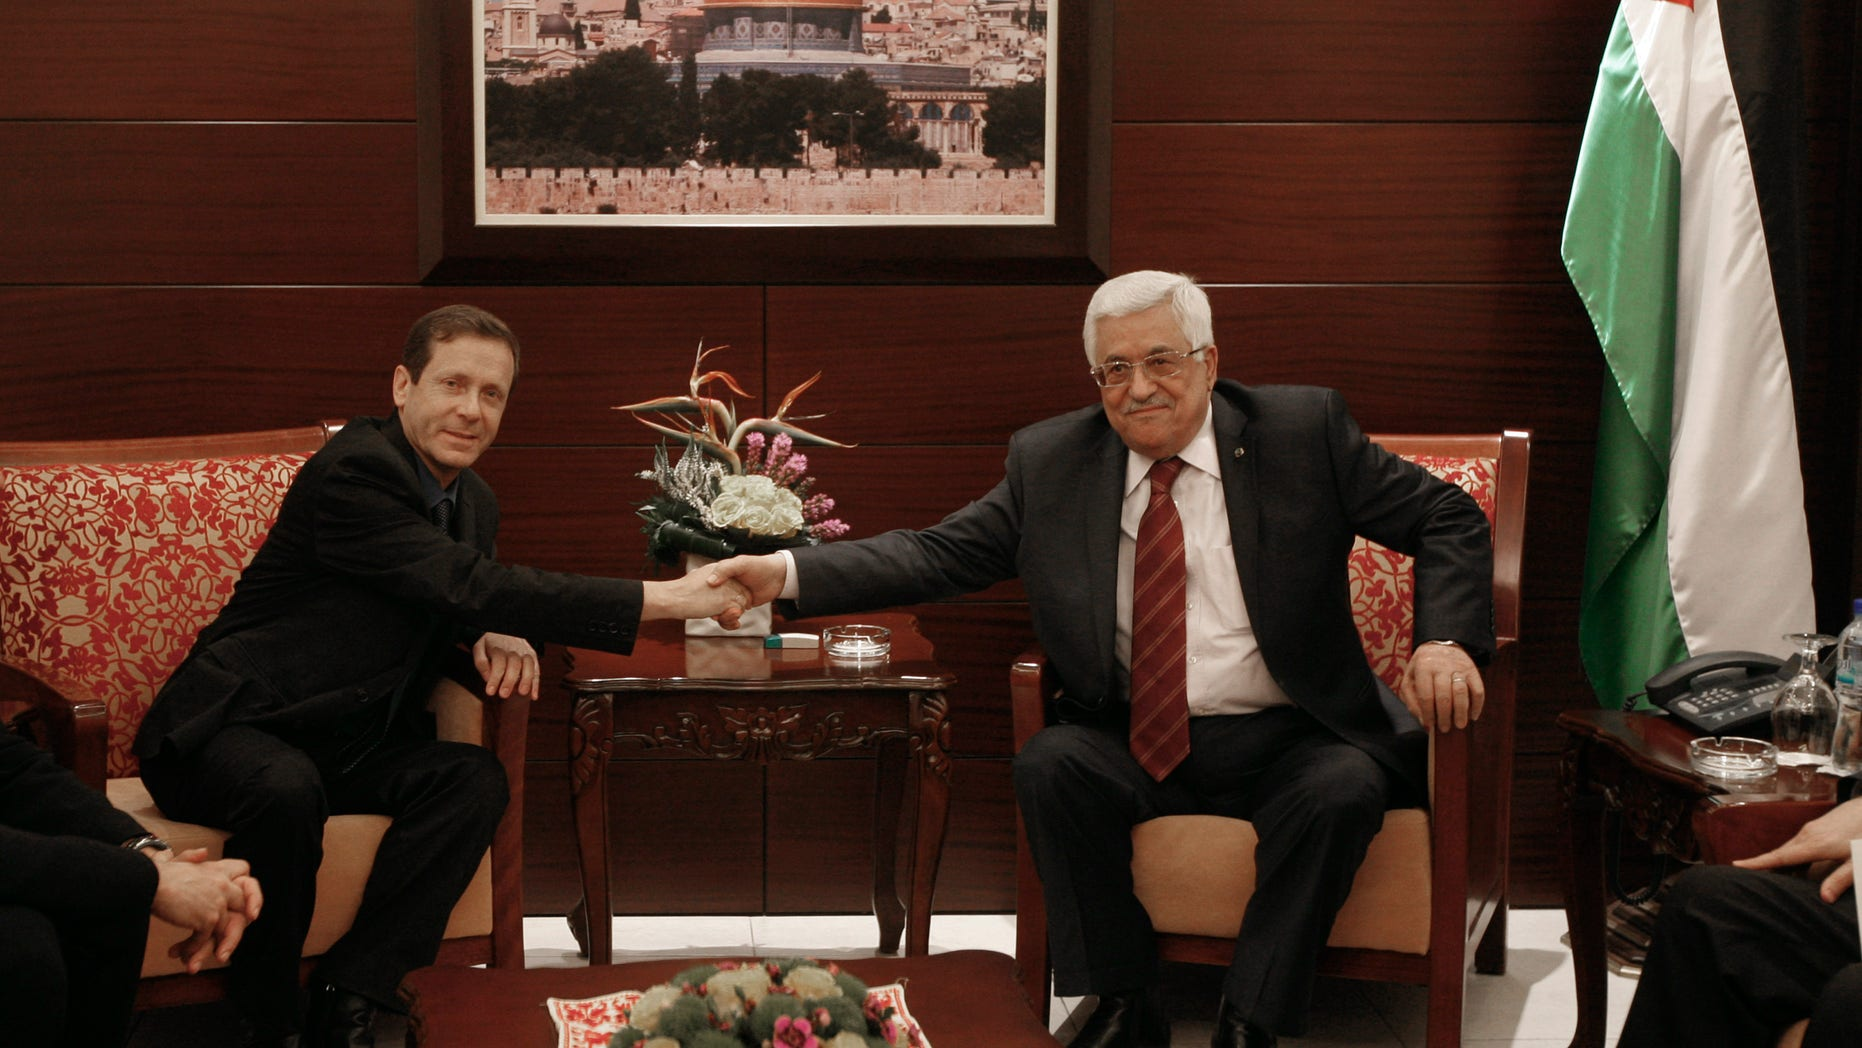 Israeli new Labor Party leader Isaac Herzog, left, shakes hands with the Palestinian President Mahmoud Abbas during their meeting in the West Bank city of Ramallah, Sunday, Dec. 1, 2013. (AP Photo/Majdi Mohammed)